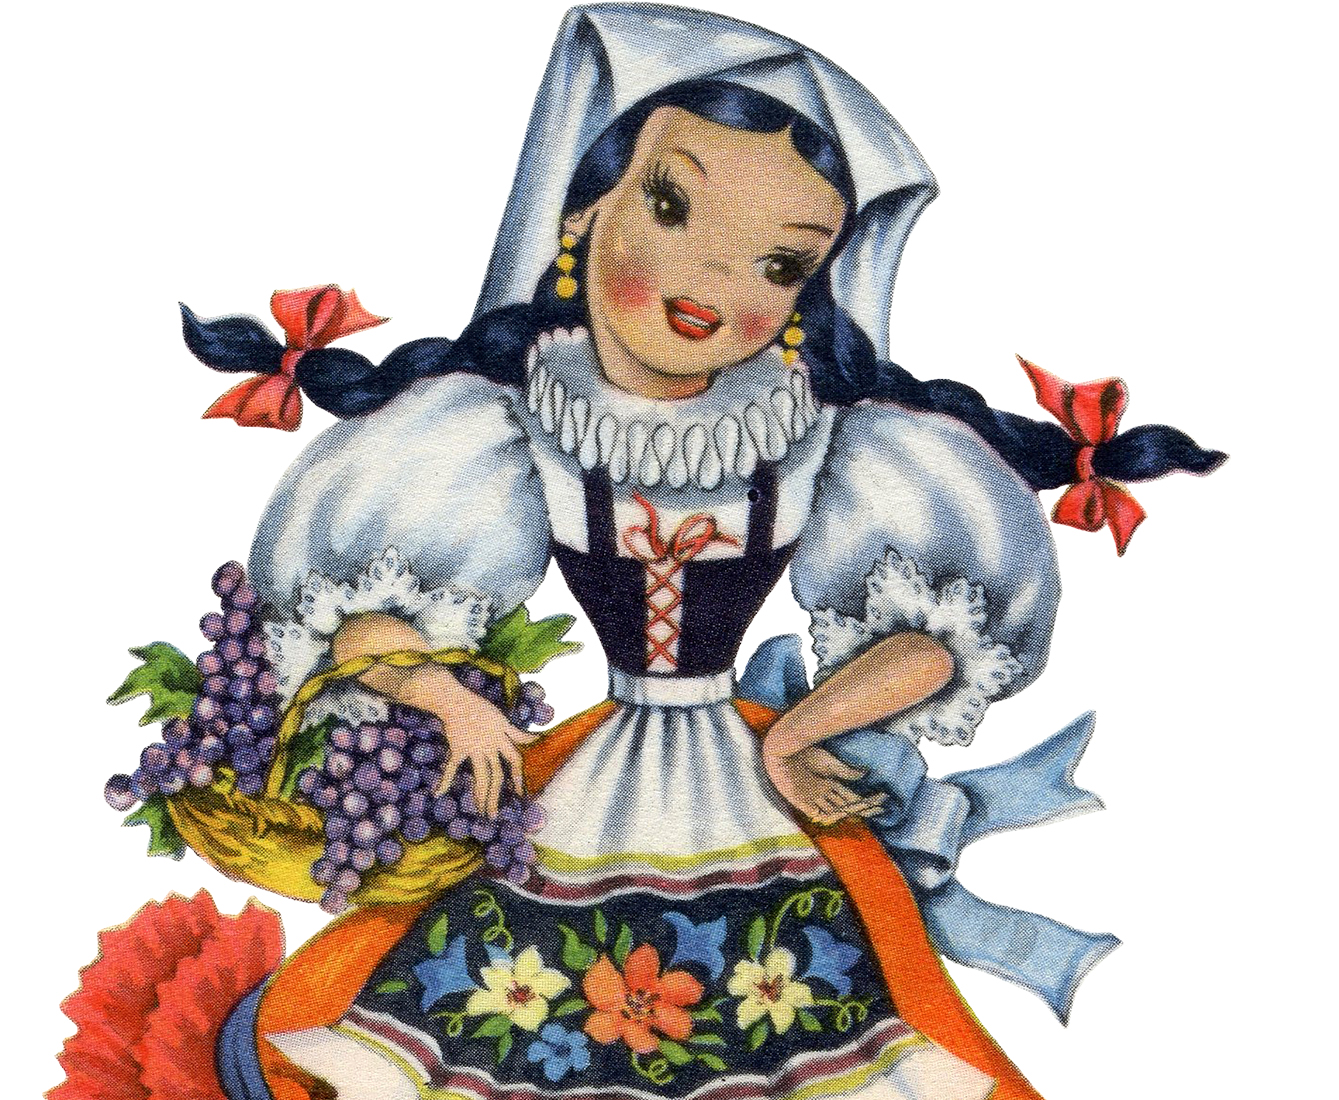 Doll clipart spain Retro Fairy Italian The